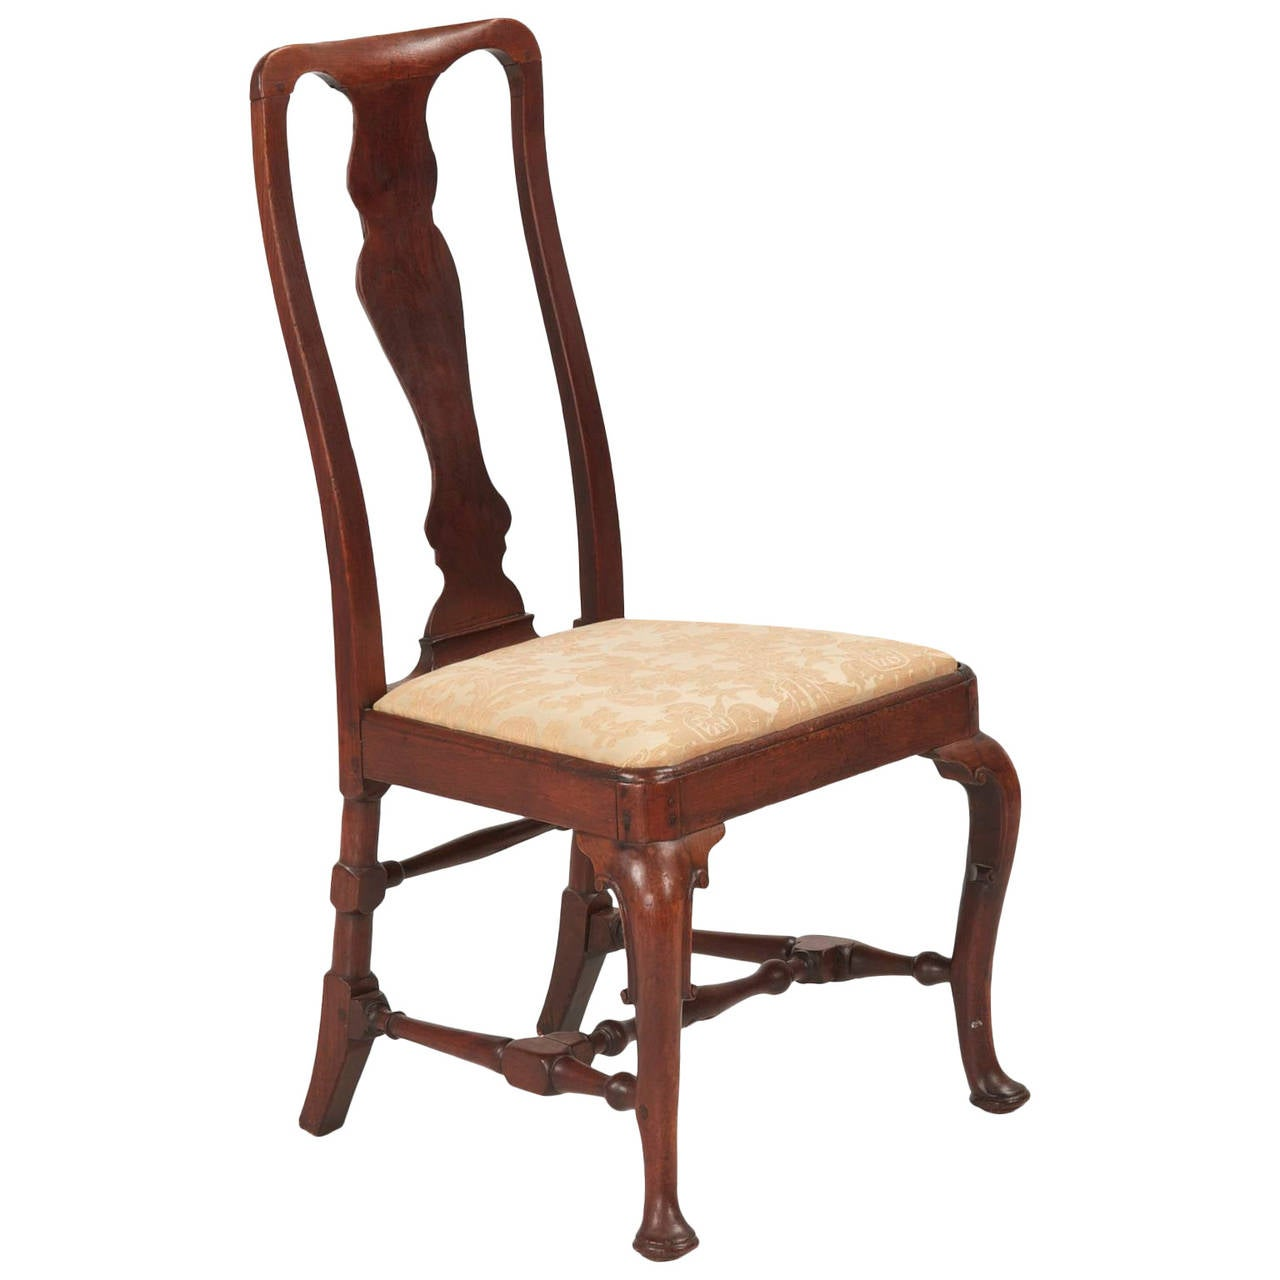 antique queen anne chair office back support for pregnancy walnut side circa 1725 1740 at